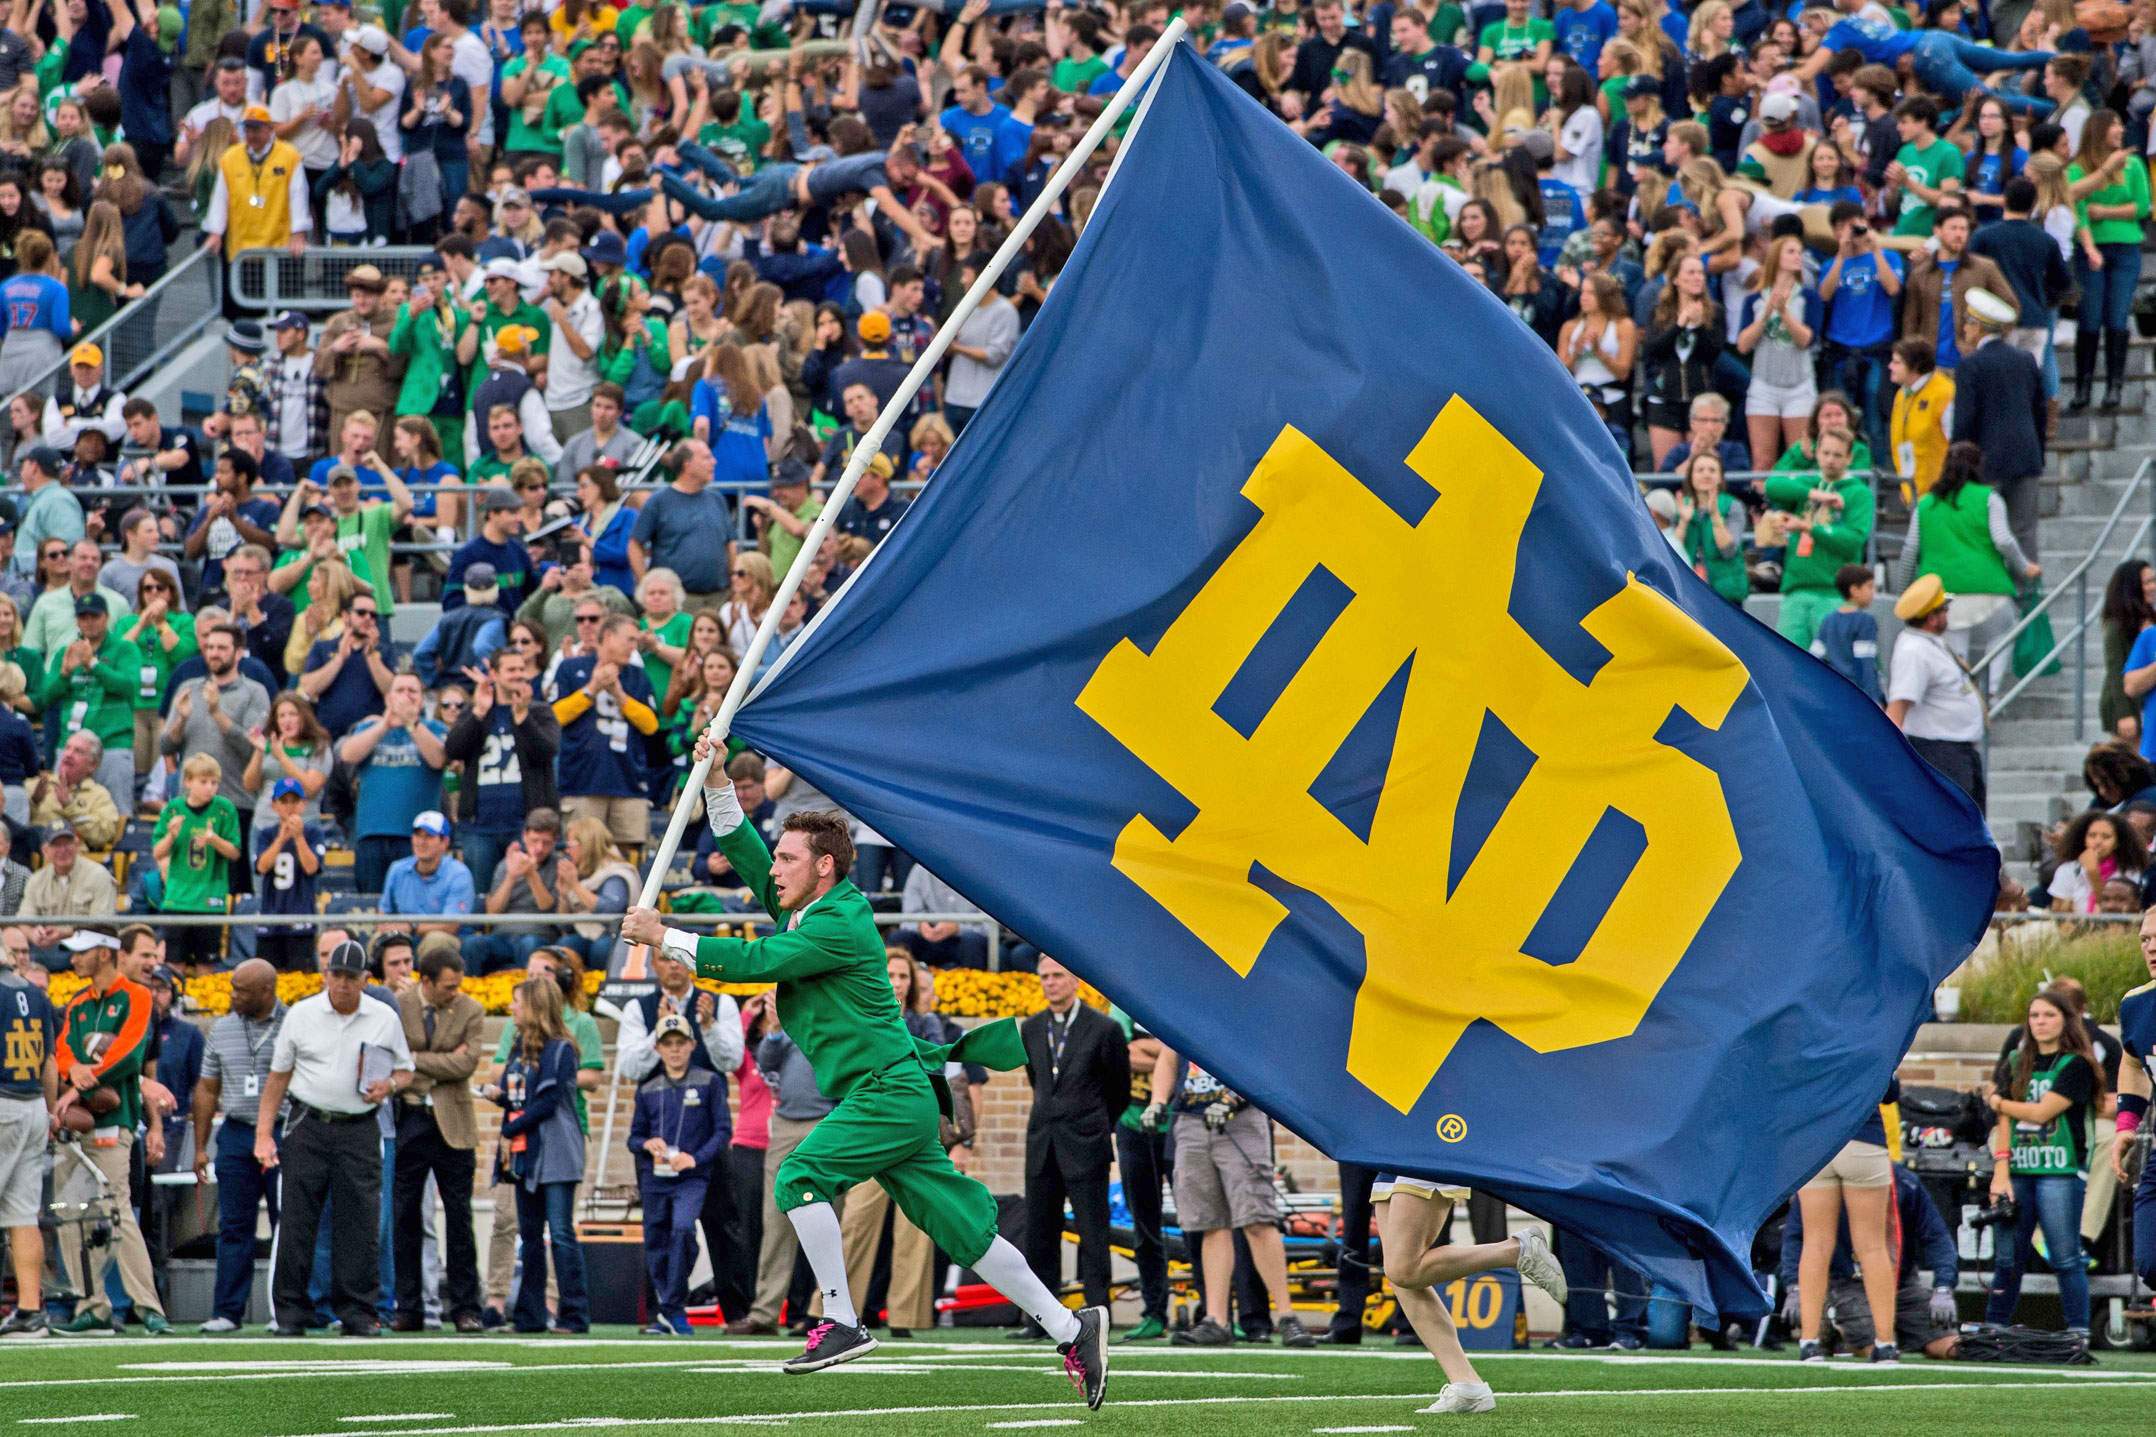 Notre-dame-state-of-program